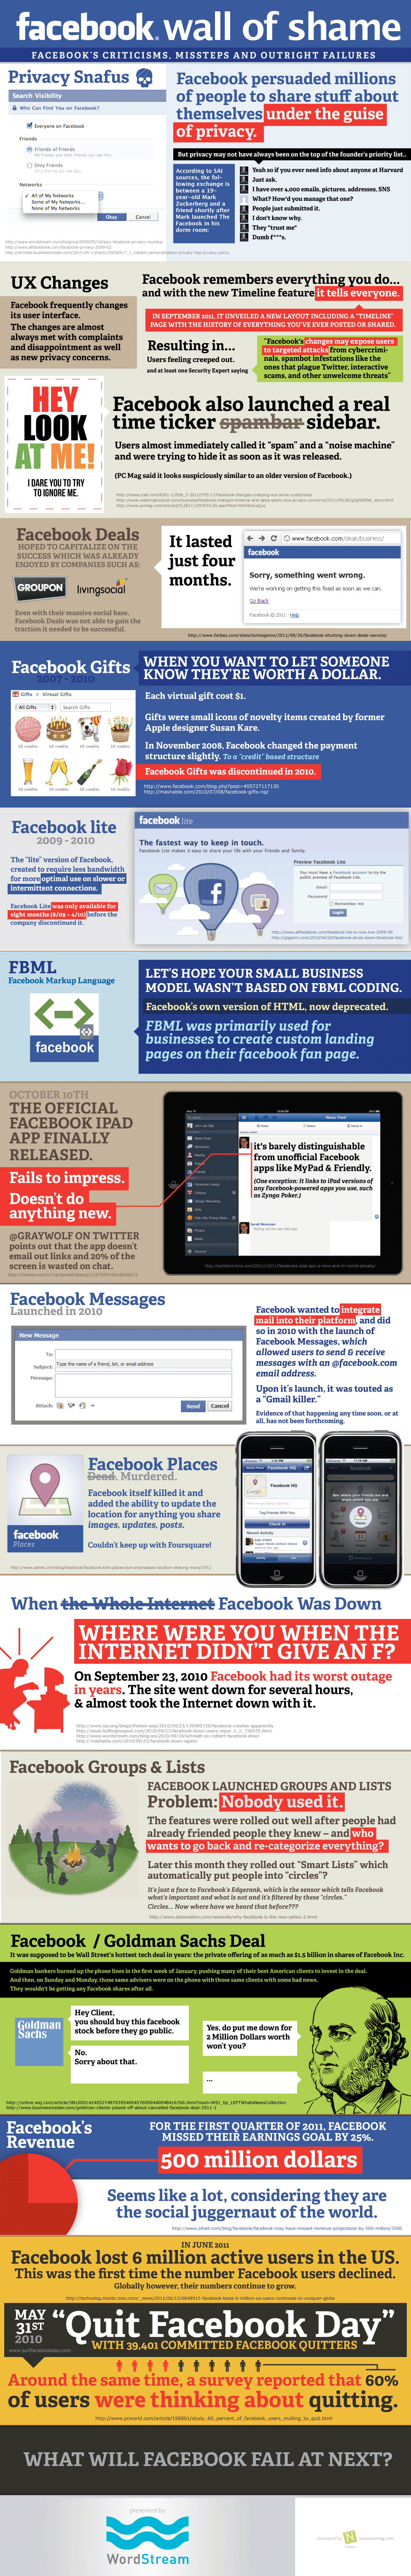 Facebook Wall Of Shame Infographic